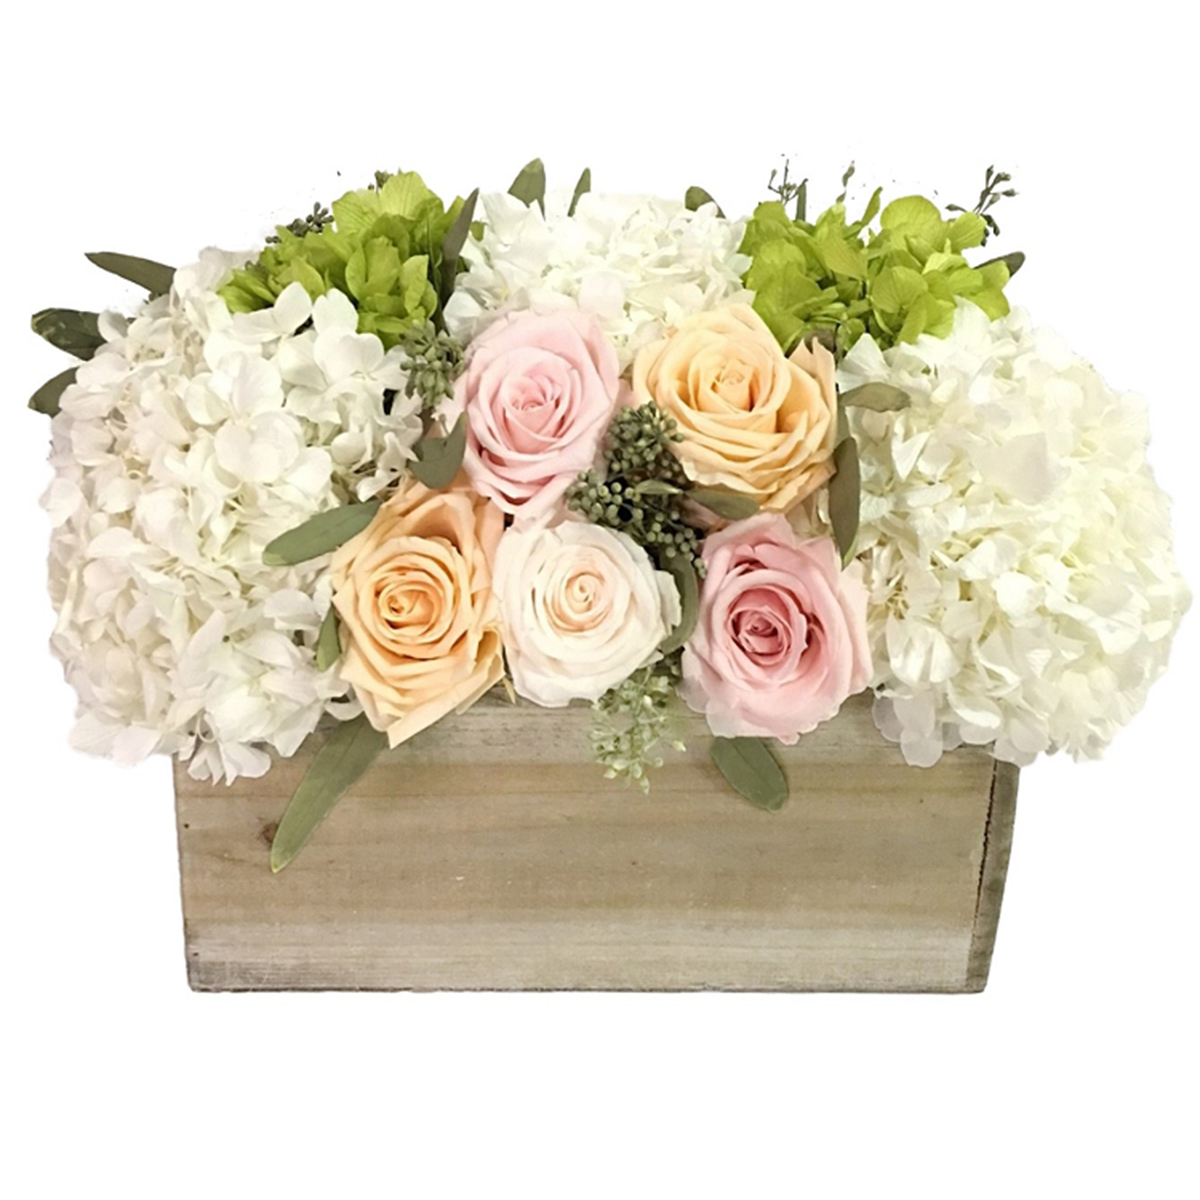 A wooden planter box filled with hydrangeas, pastel roses, and seeded eucalyptus photo